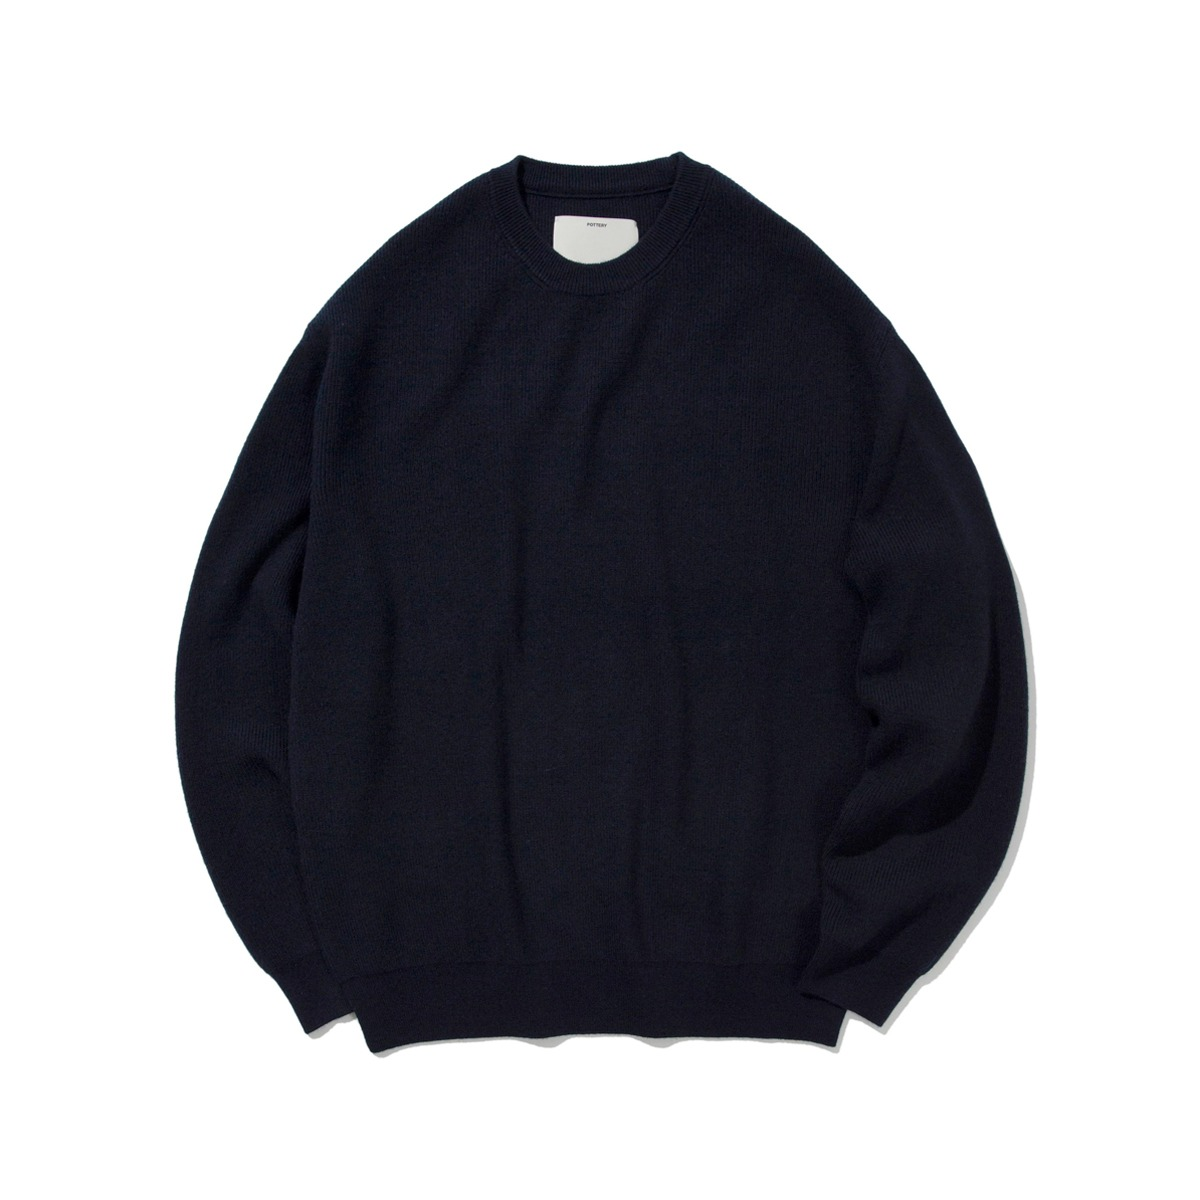 [POTTERY] COMFORT CREWNECK KNIT 'NAVY'